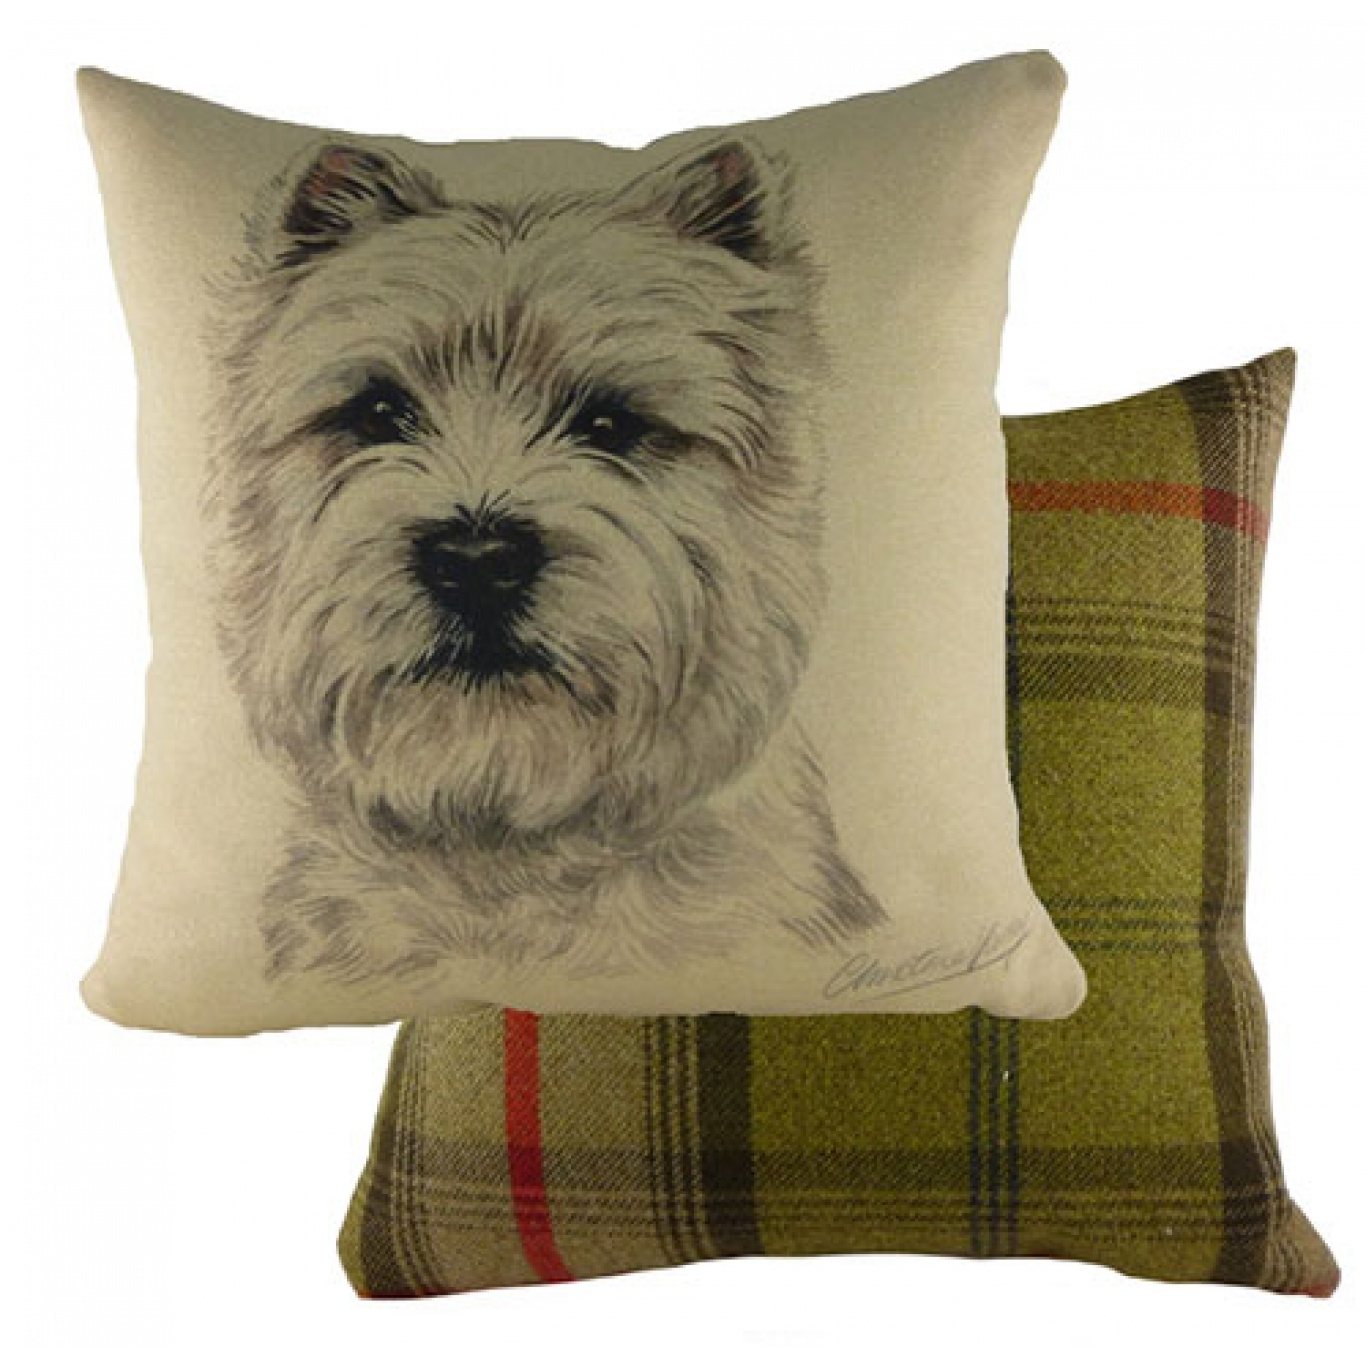 Image of Waggy Dogz Westie Cushion Cover